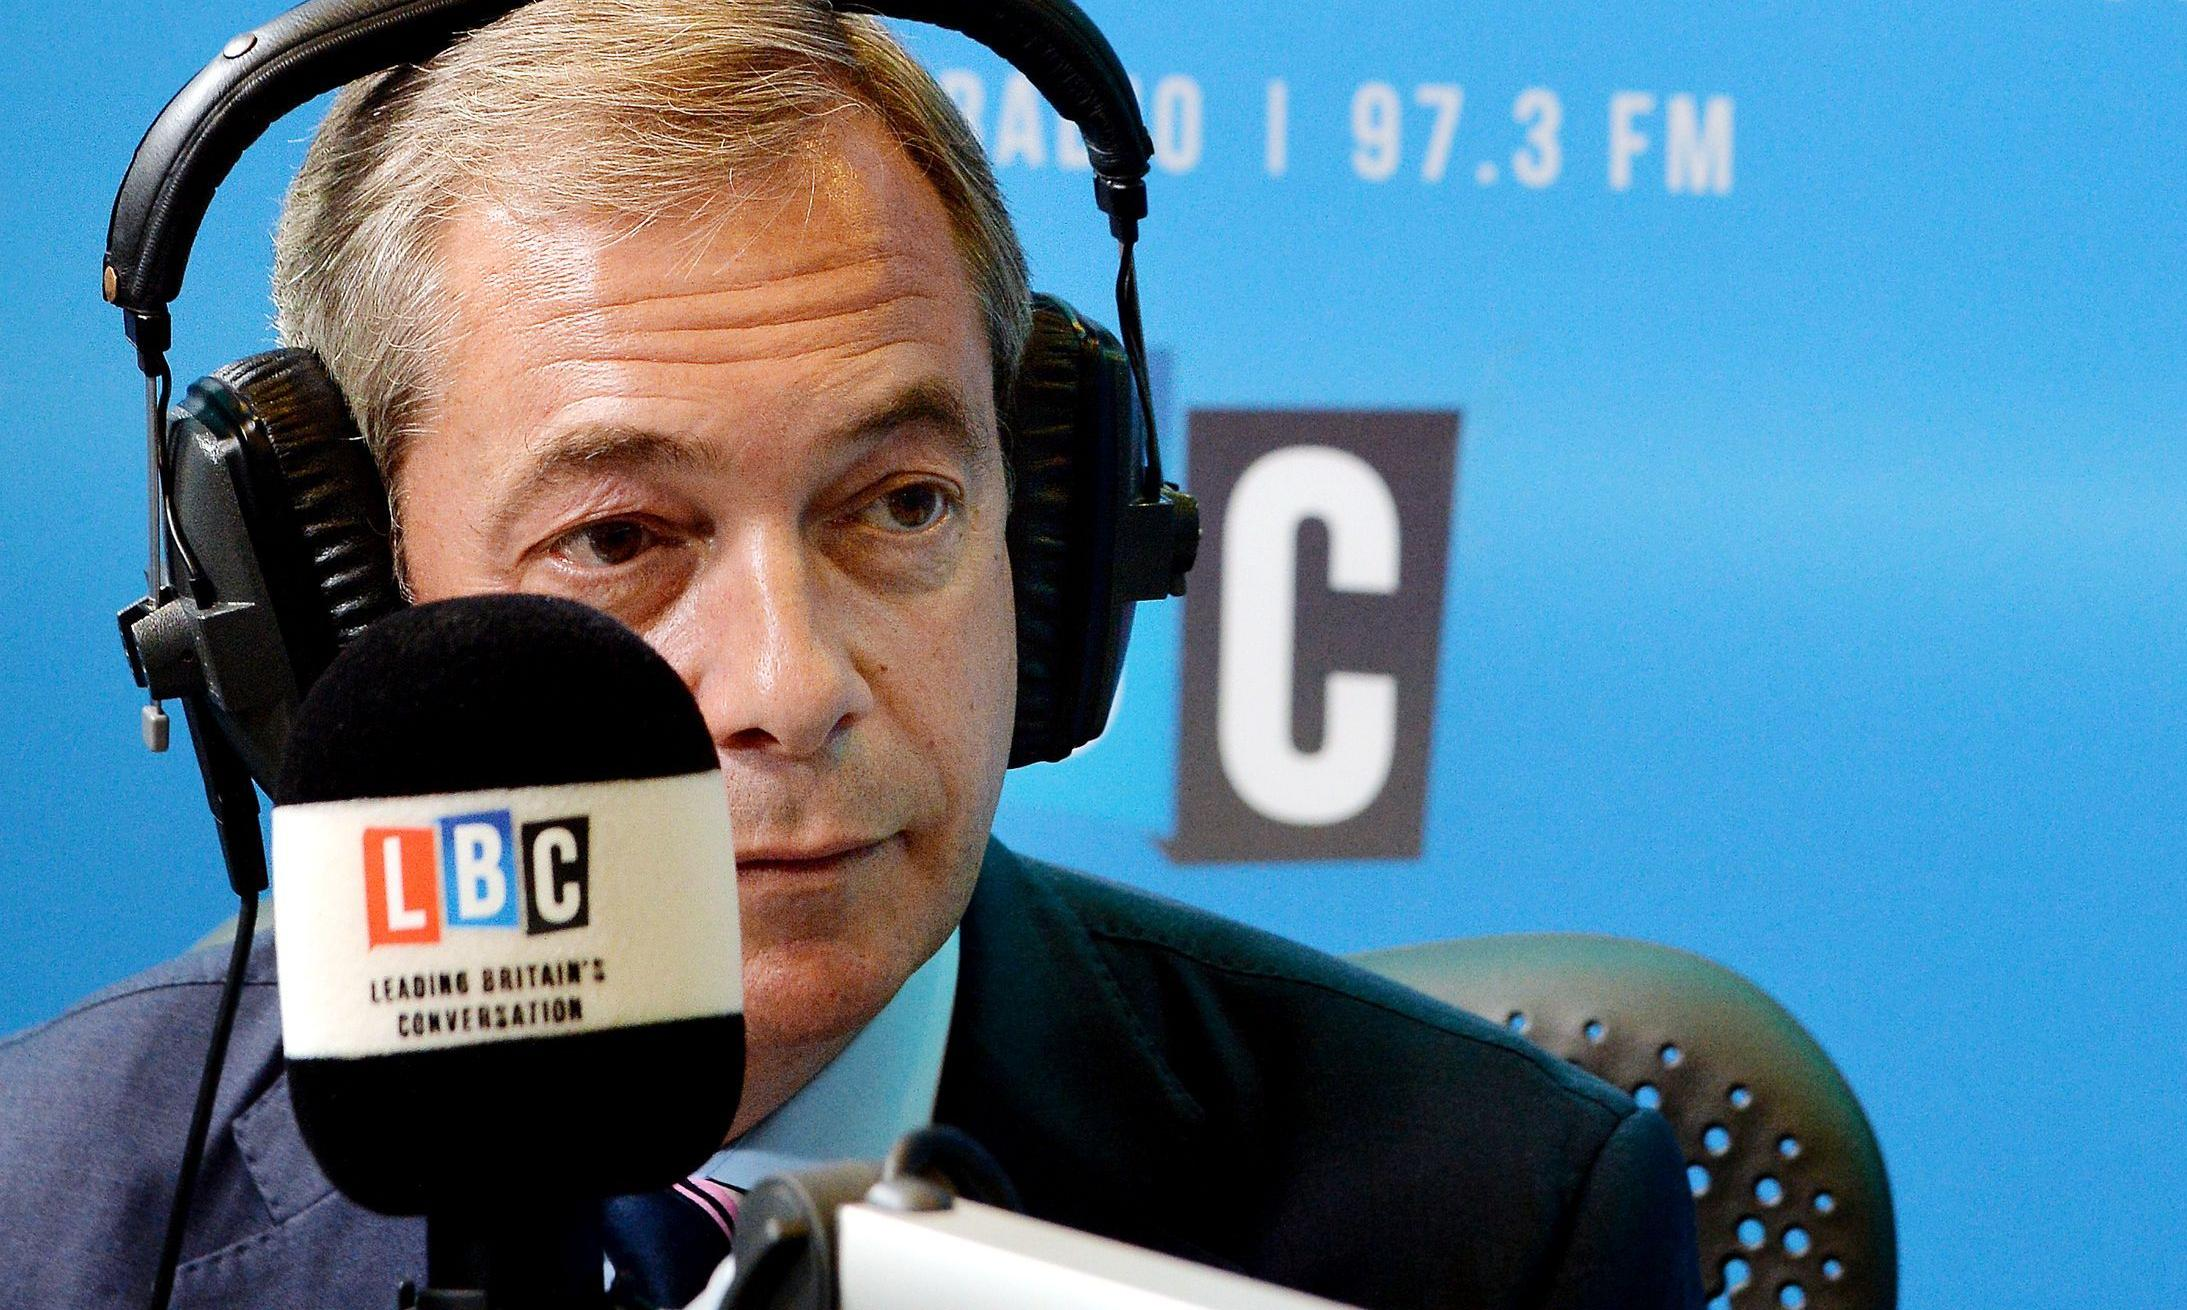 Nigel Farage hits out at London's Uber drivers